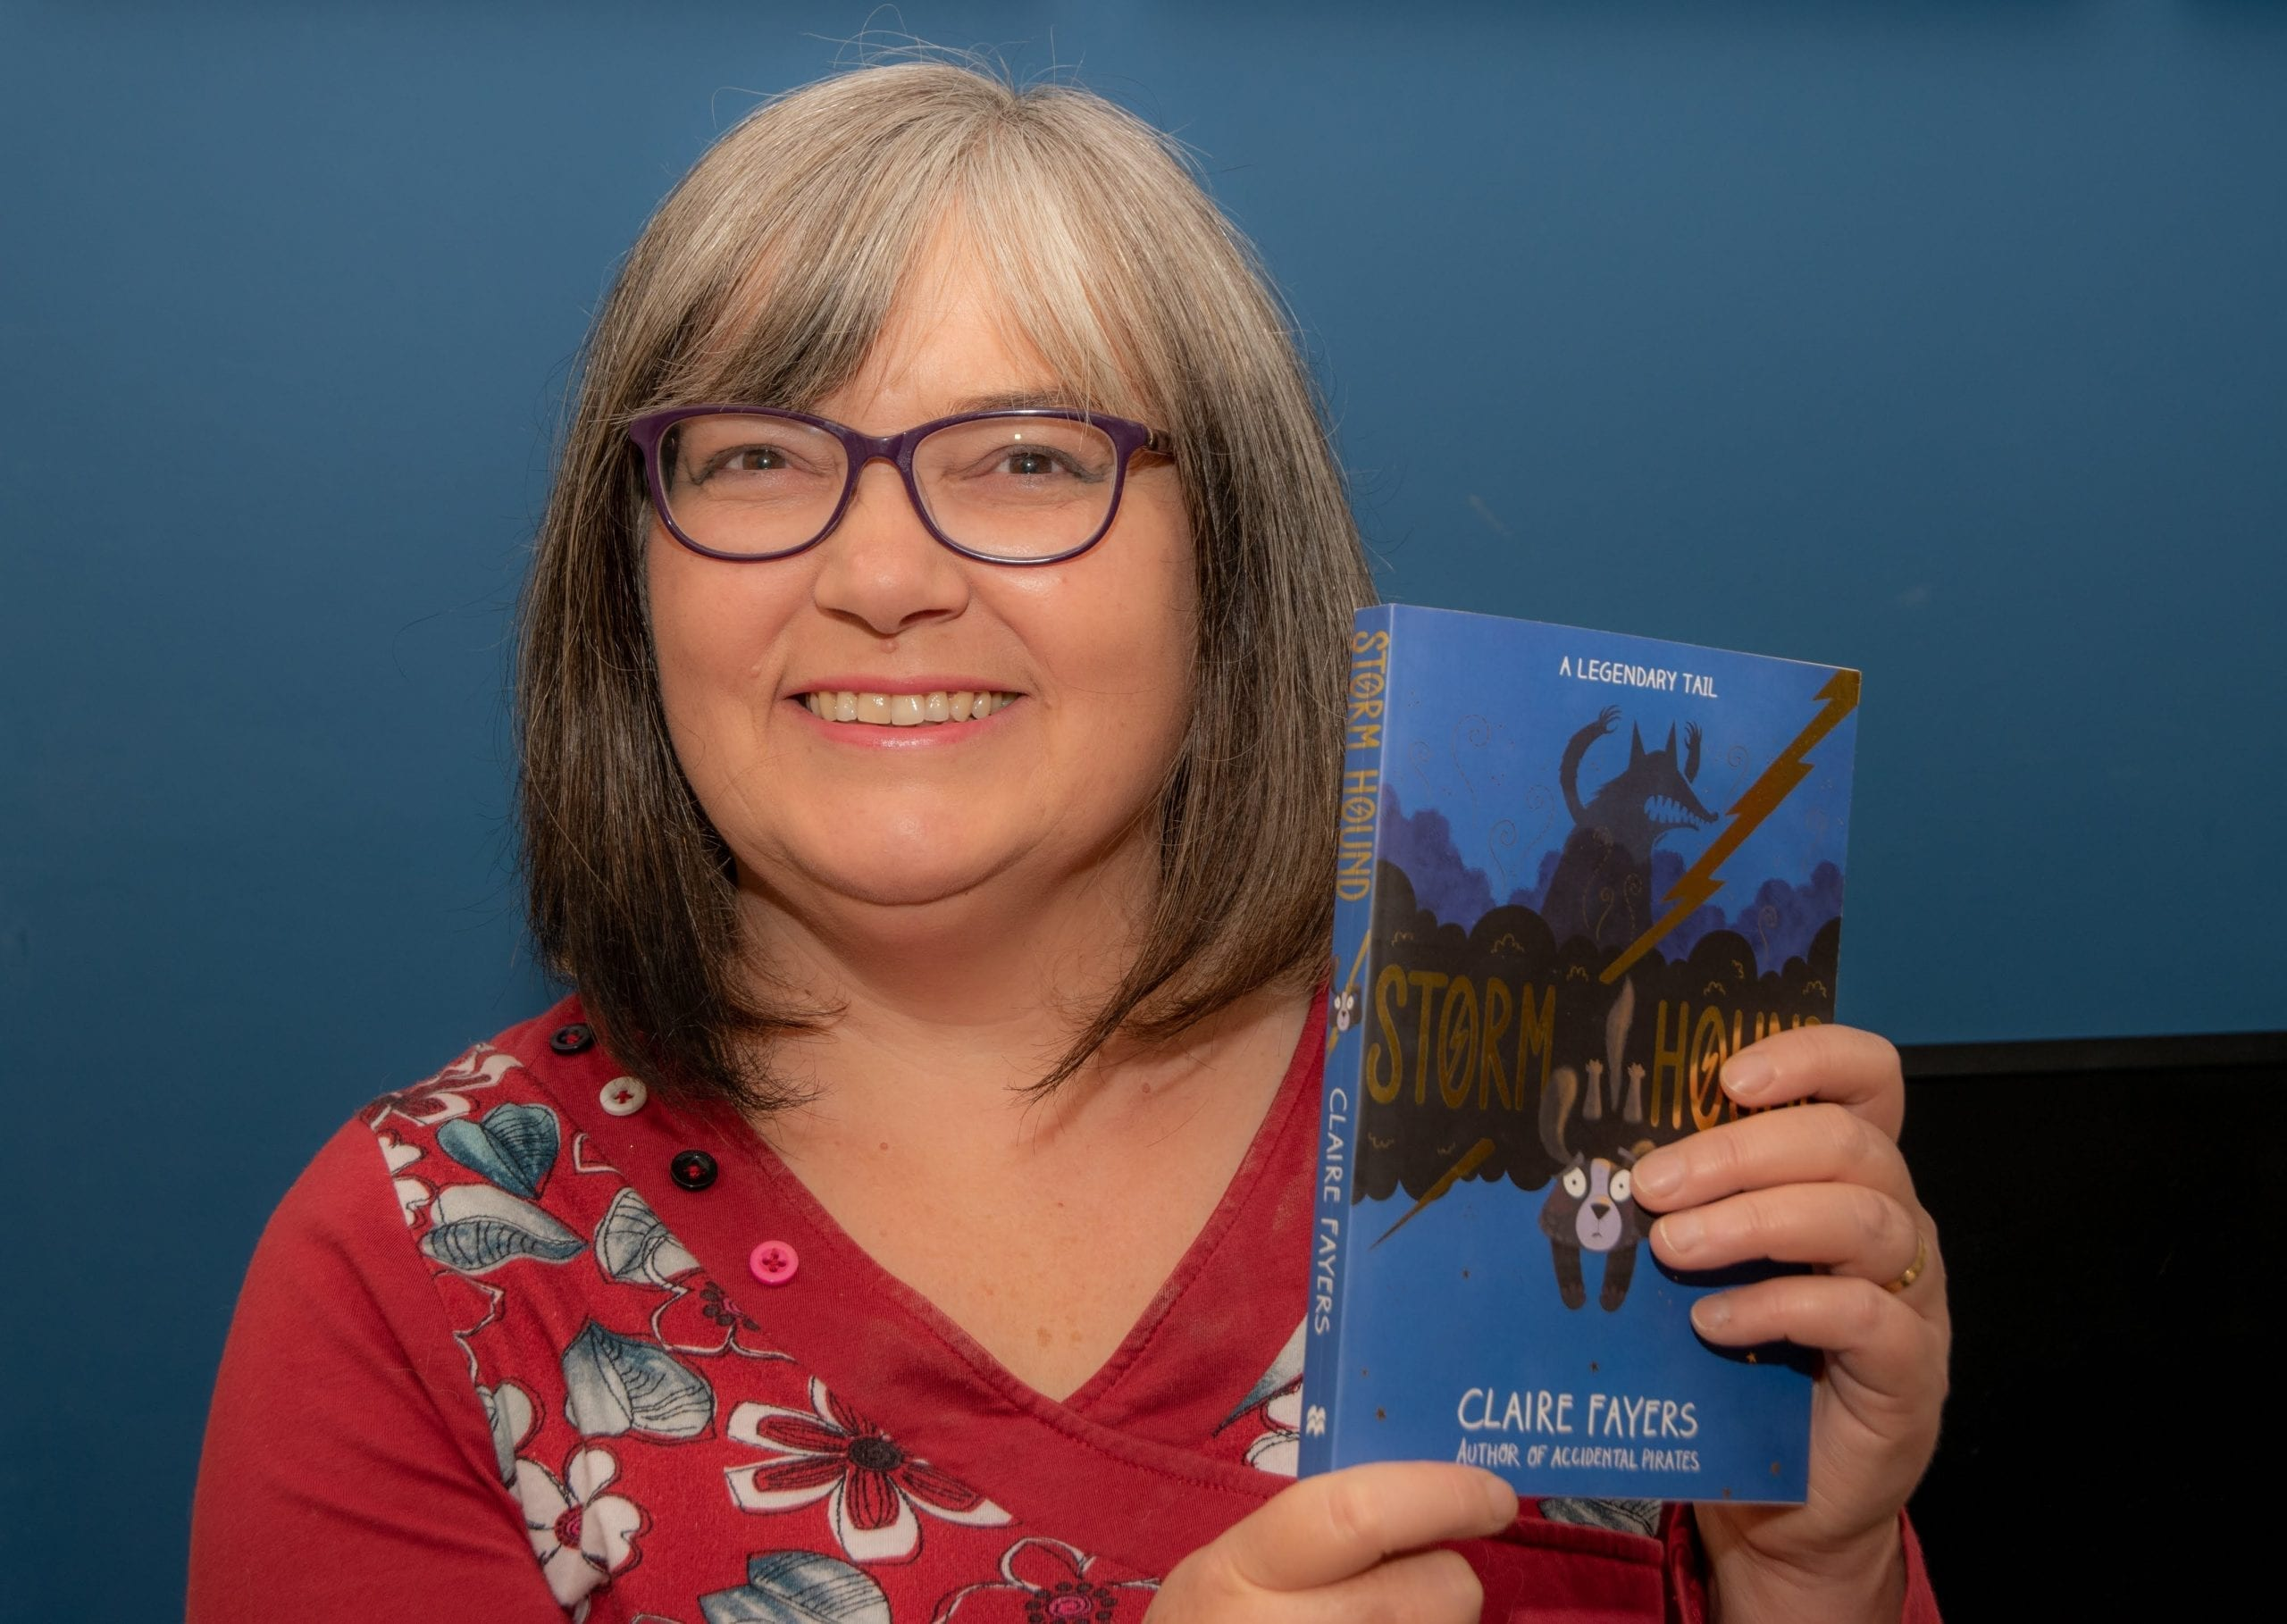 Claire Fayers holding a copy of her novel Storm Hound which won the English-language prize in the Tir na n-Og Awards 2020